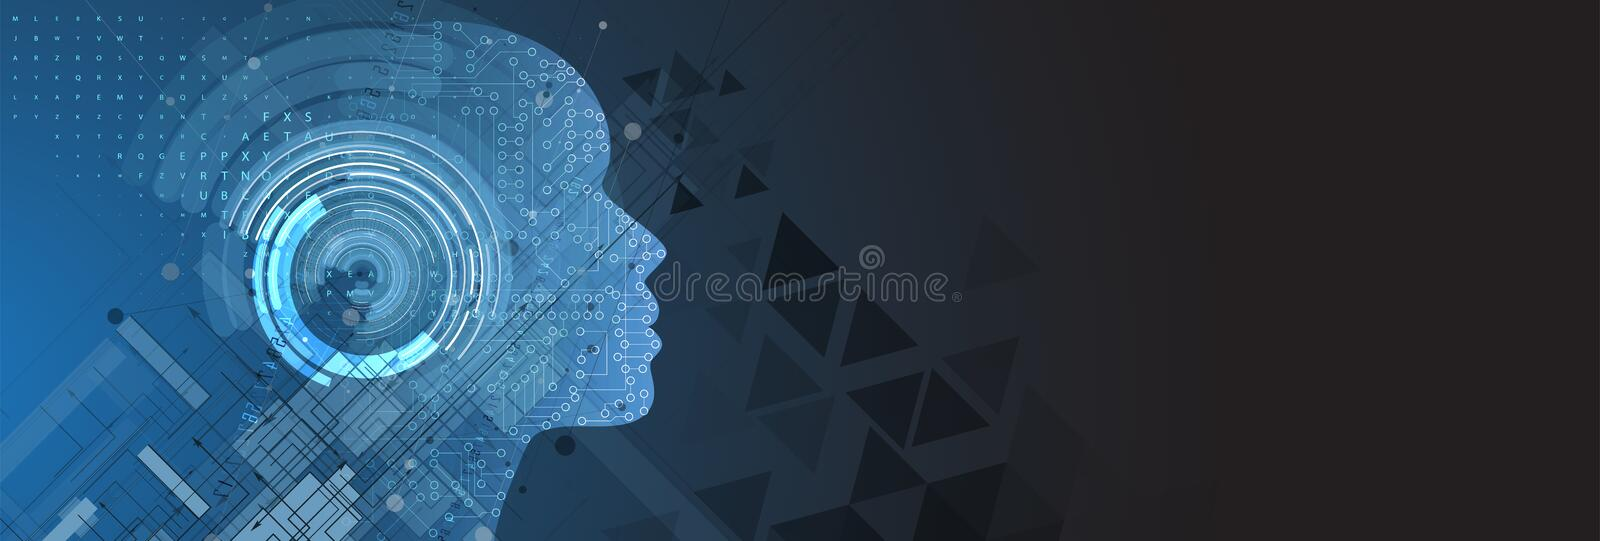 Artificial intelligence. Technology web background. Virtual concept stock illustration